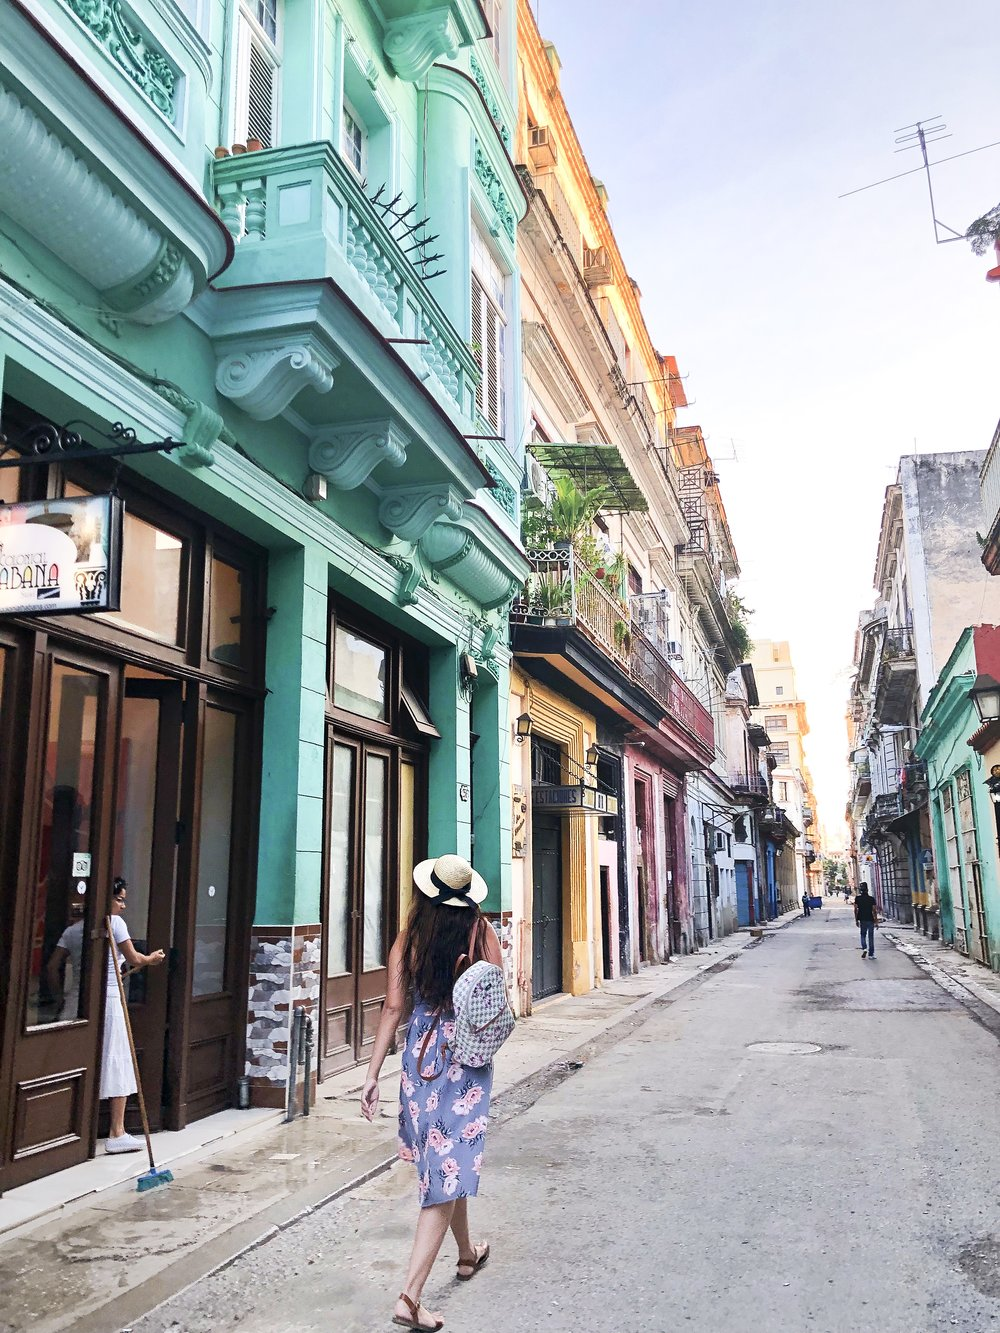 Calm, safe and beautiful streets of  Habana Vieja